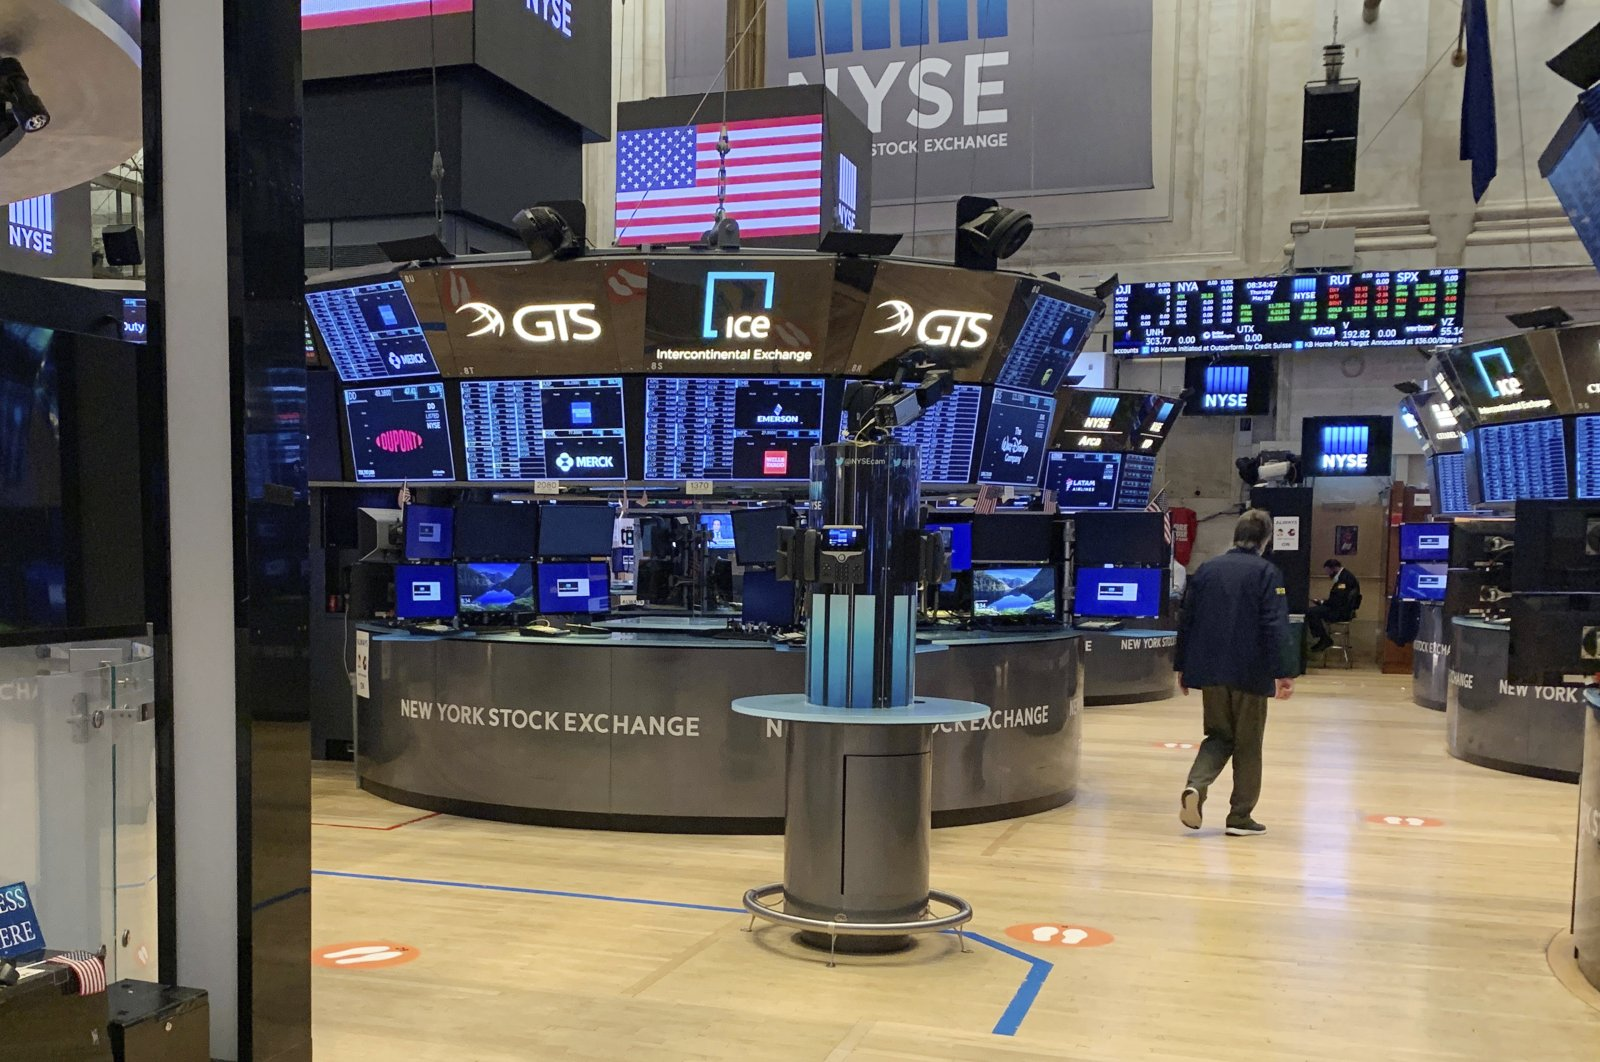 A trader walks across the partially reopened trading floor of the New York Stock Exchange, Thursday, May 28, 2020. Stocks are pushing higher in morning trading on Wall Street Thursday, extending this week's rally built on hopes for a coming economic revival. (AP Photo)